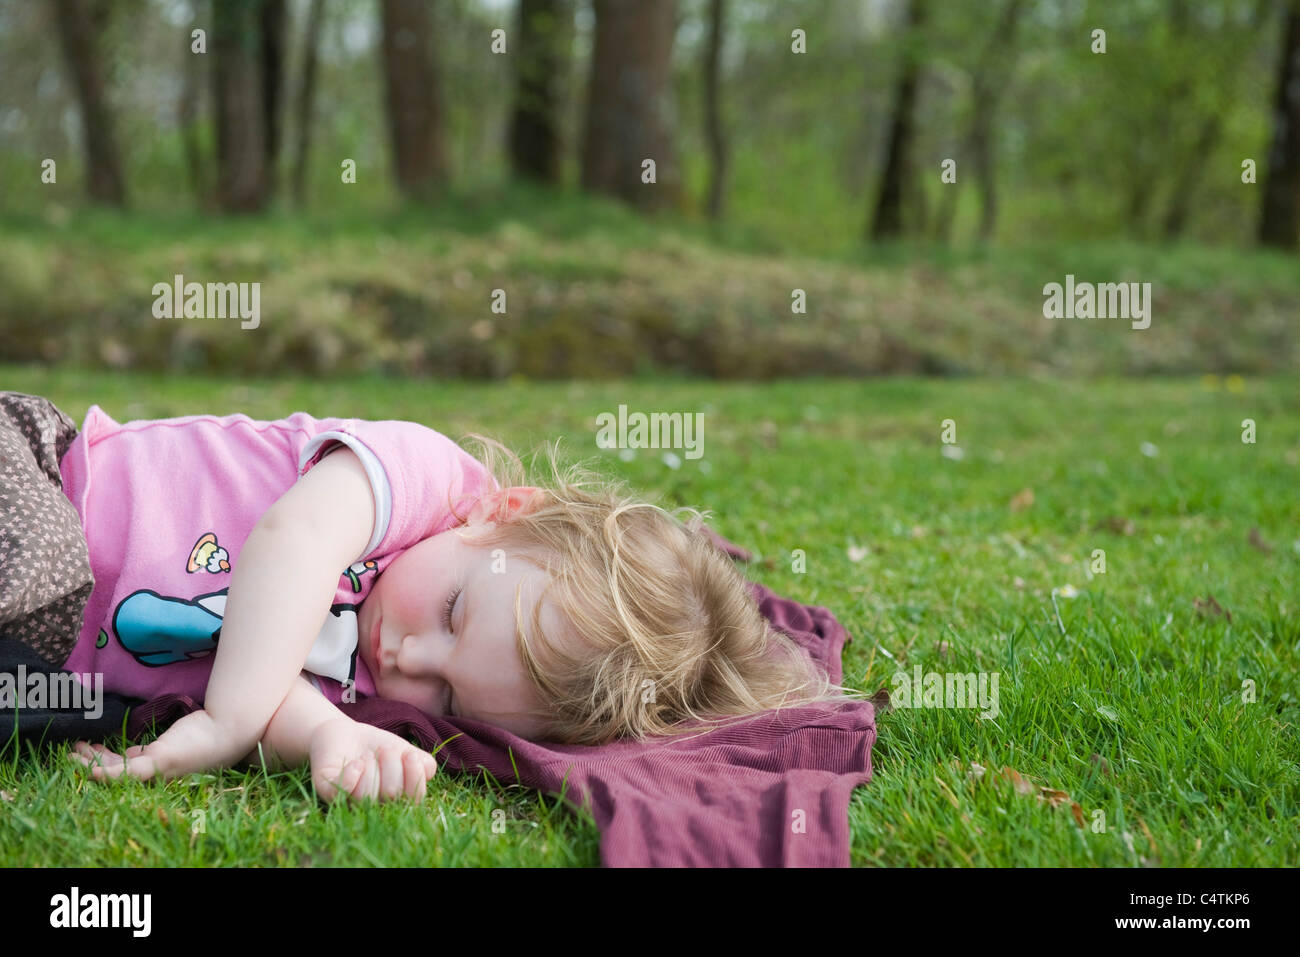 Toddler girl taking a nap outdoors Stock Photo